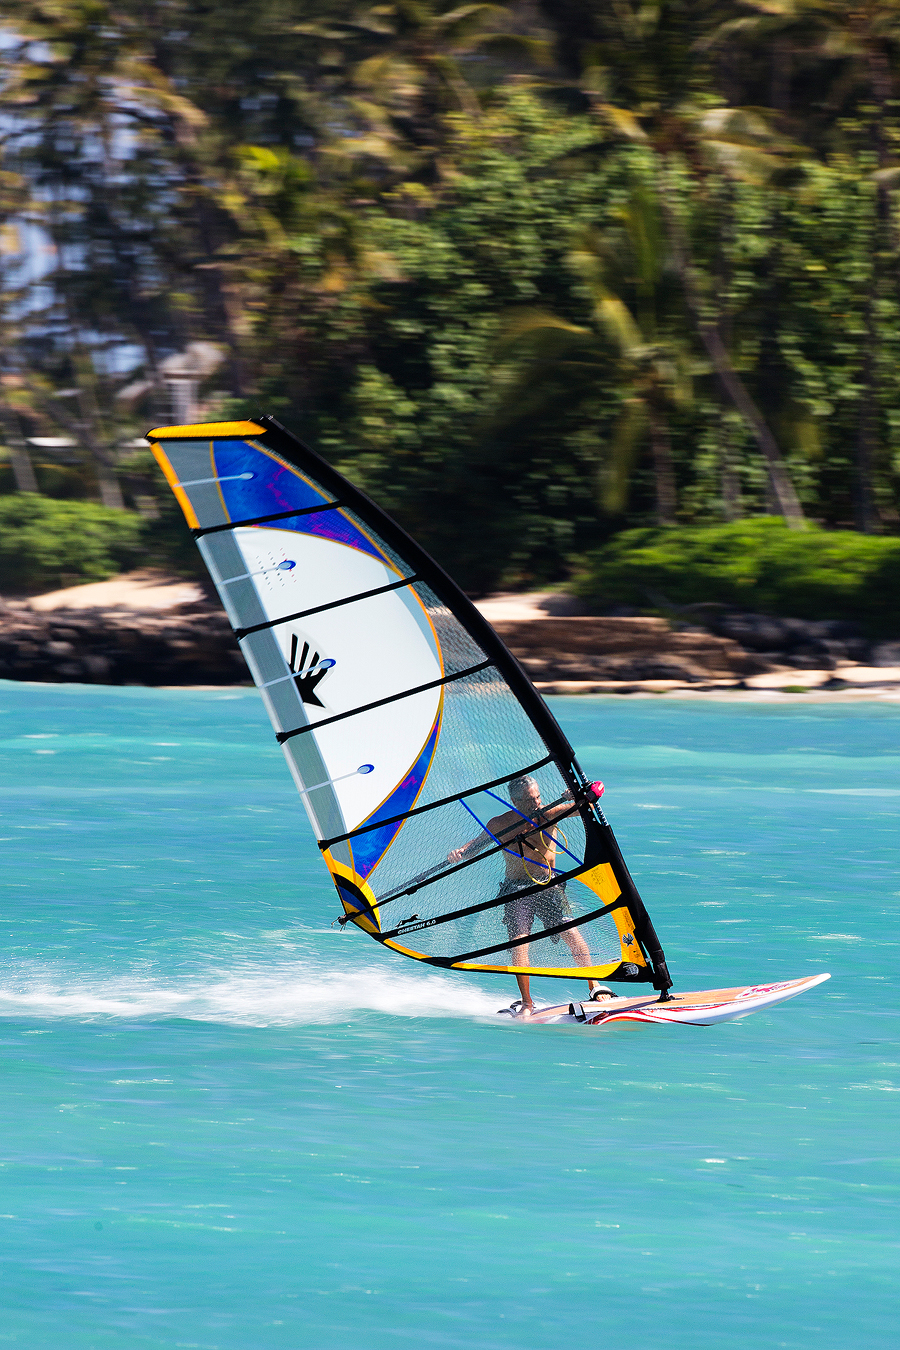 David Ezzy in action on Maui, having fun on one of his sails (Pic: Kevin Pritchard).